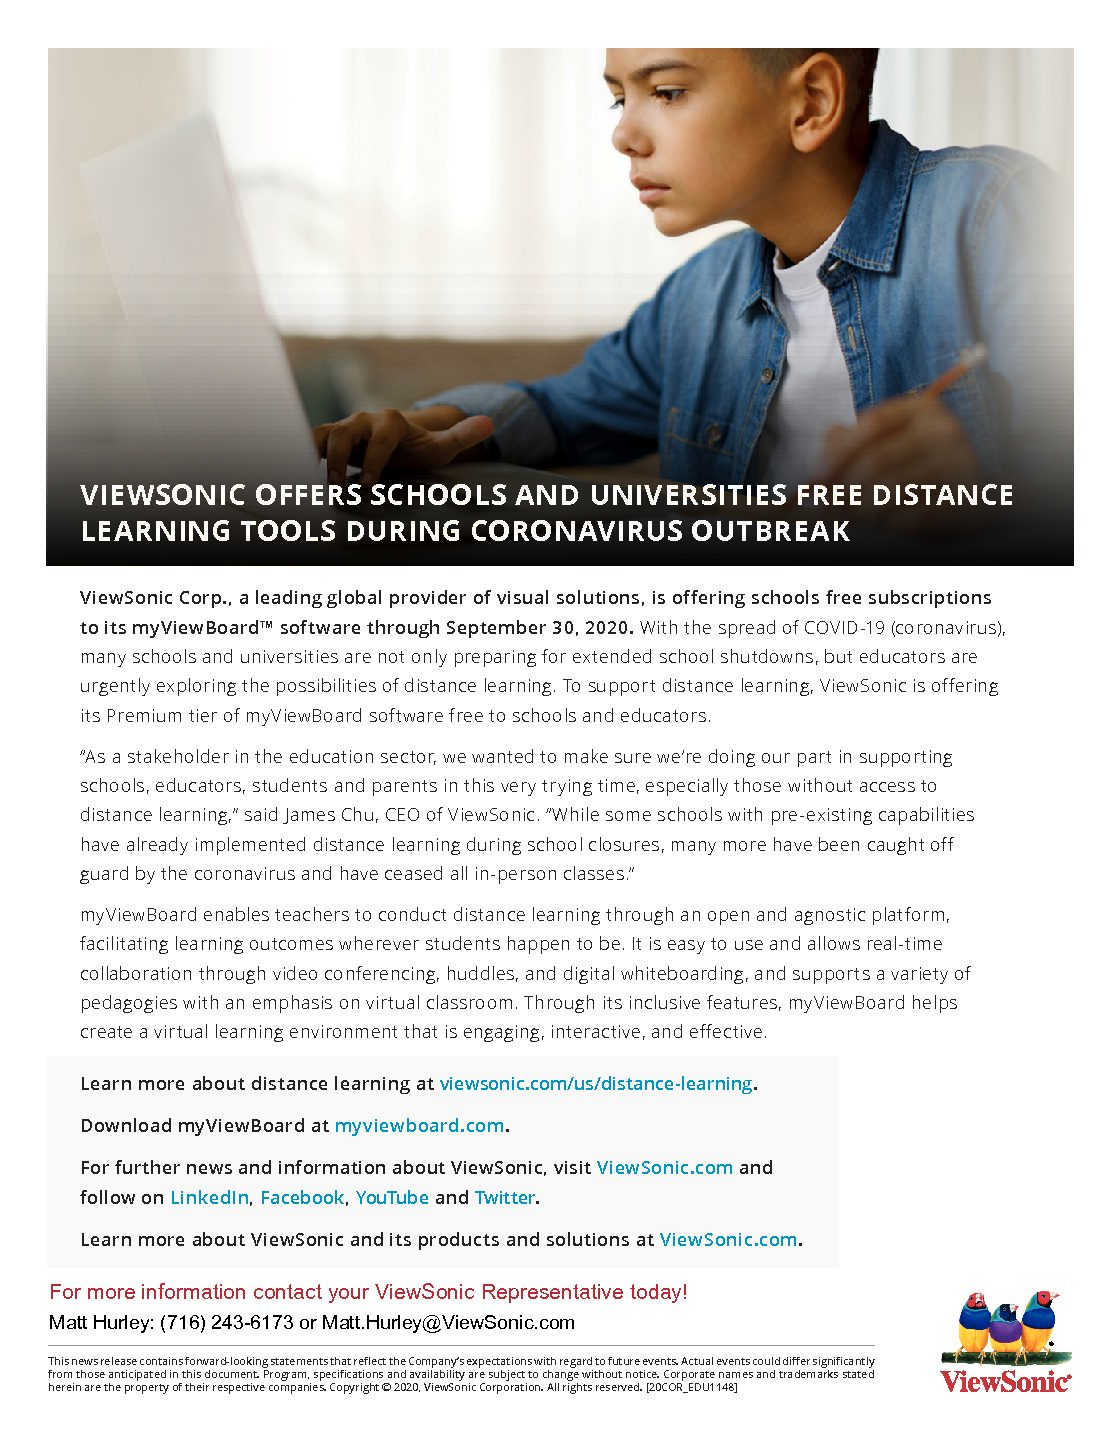 ViewSonic Distance Learning